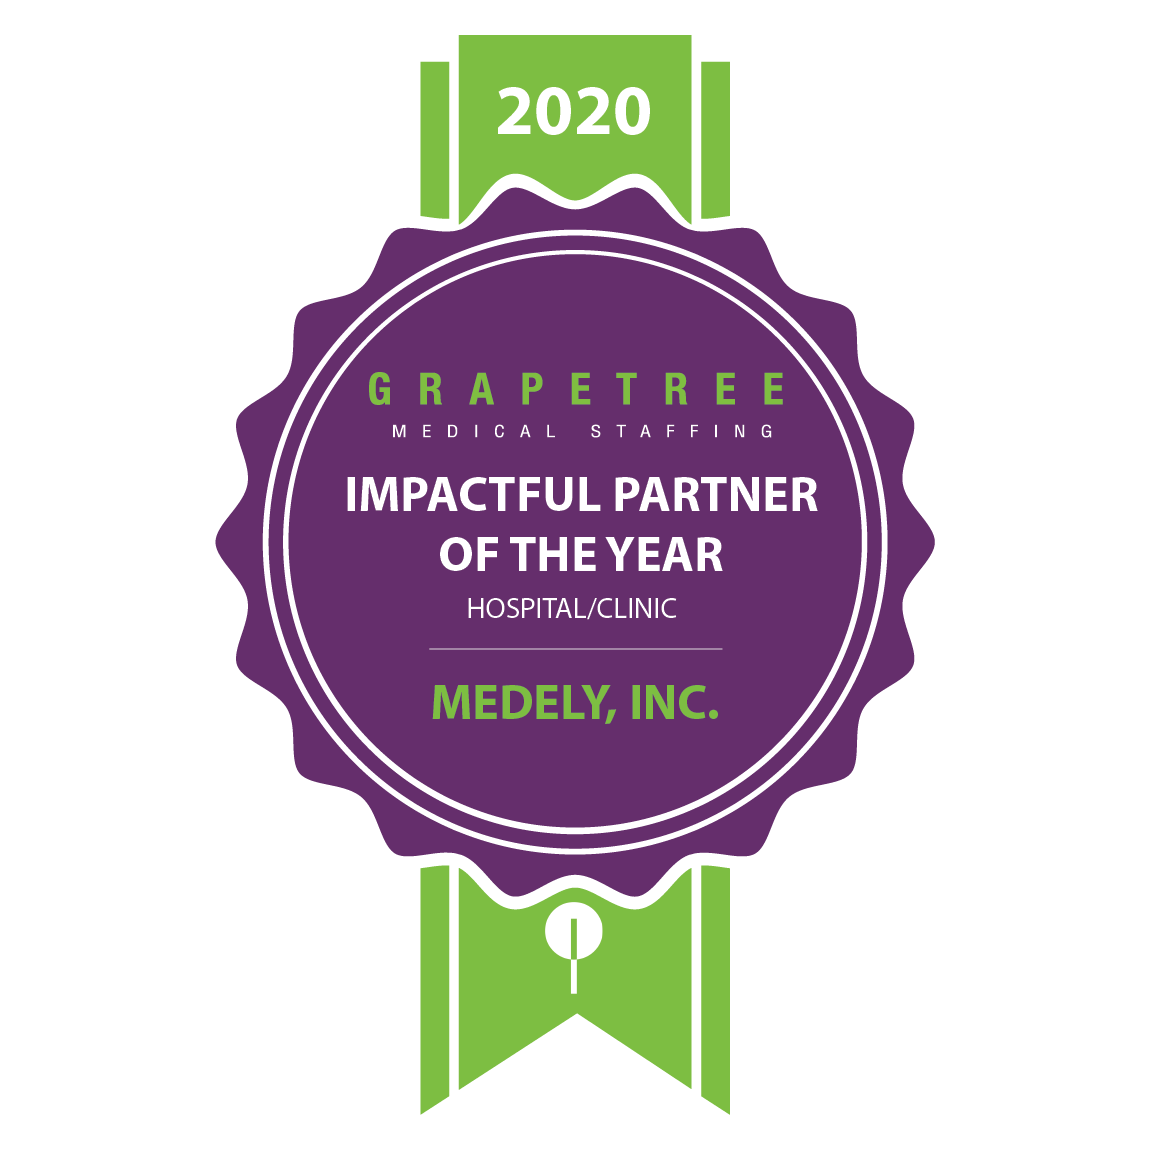 IMPACTFUL PARTNER OF THE YEAR (HOSPITAL/CLINIC) Medley, Inc.